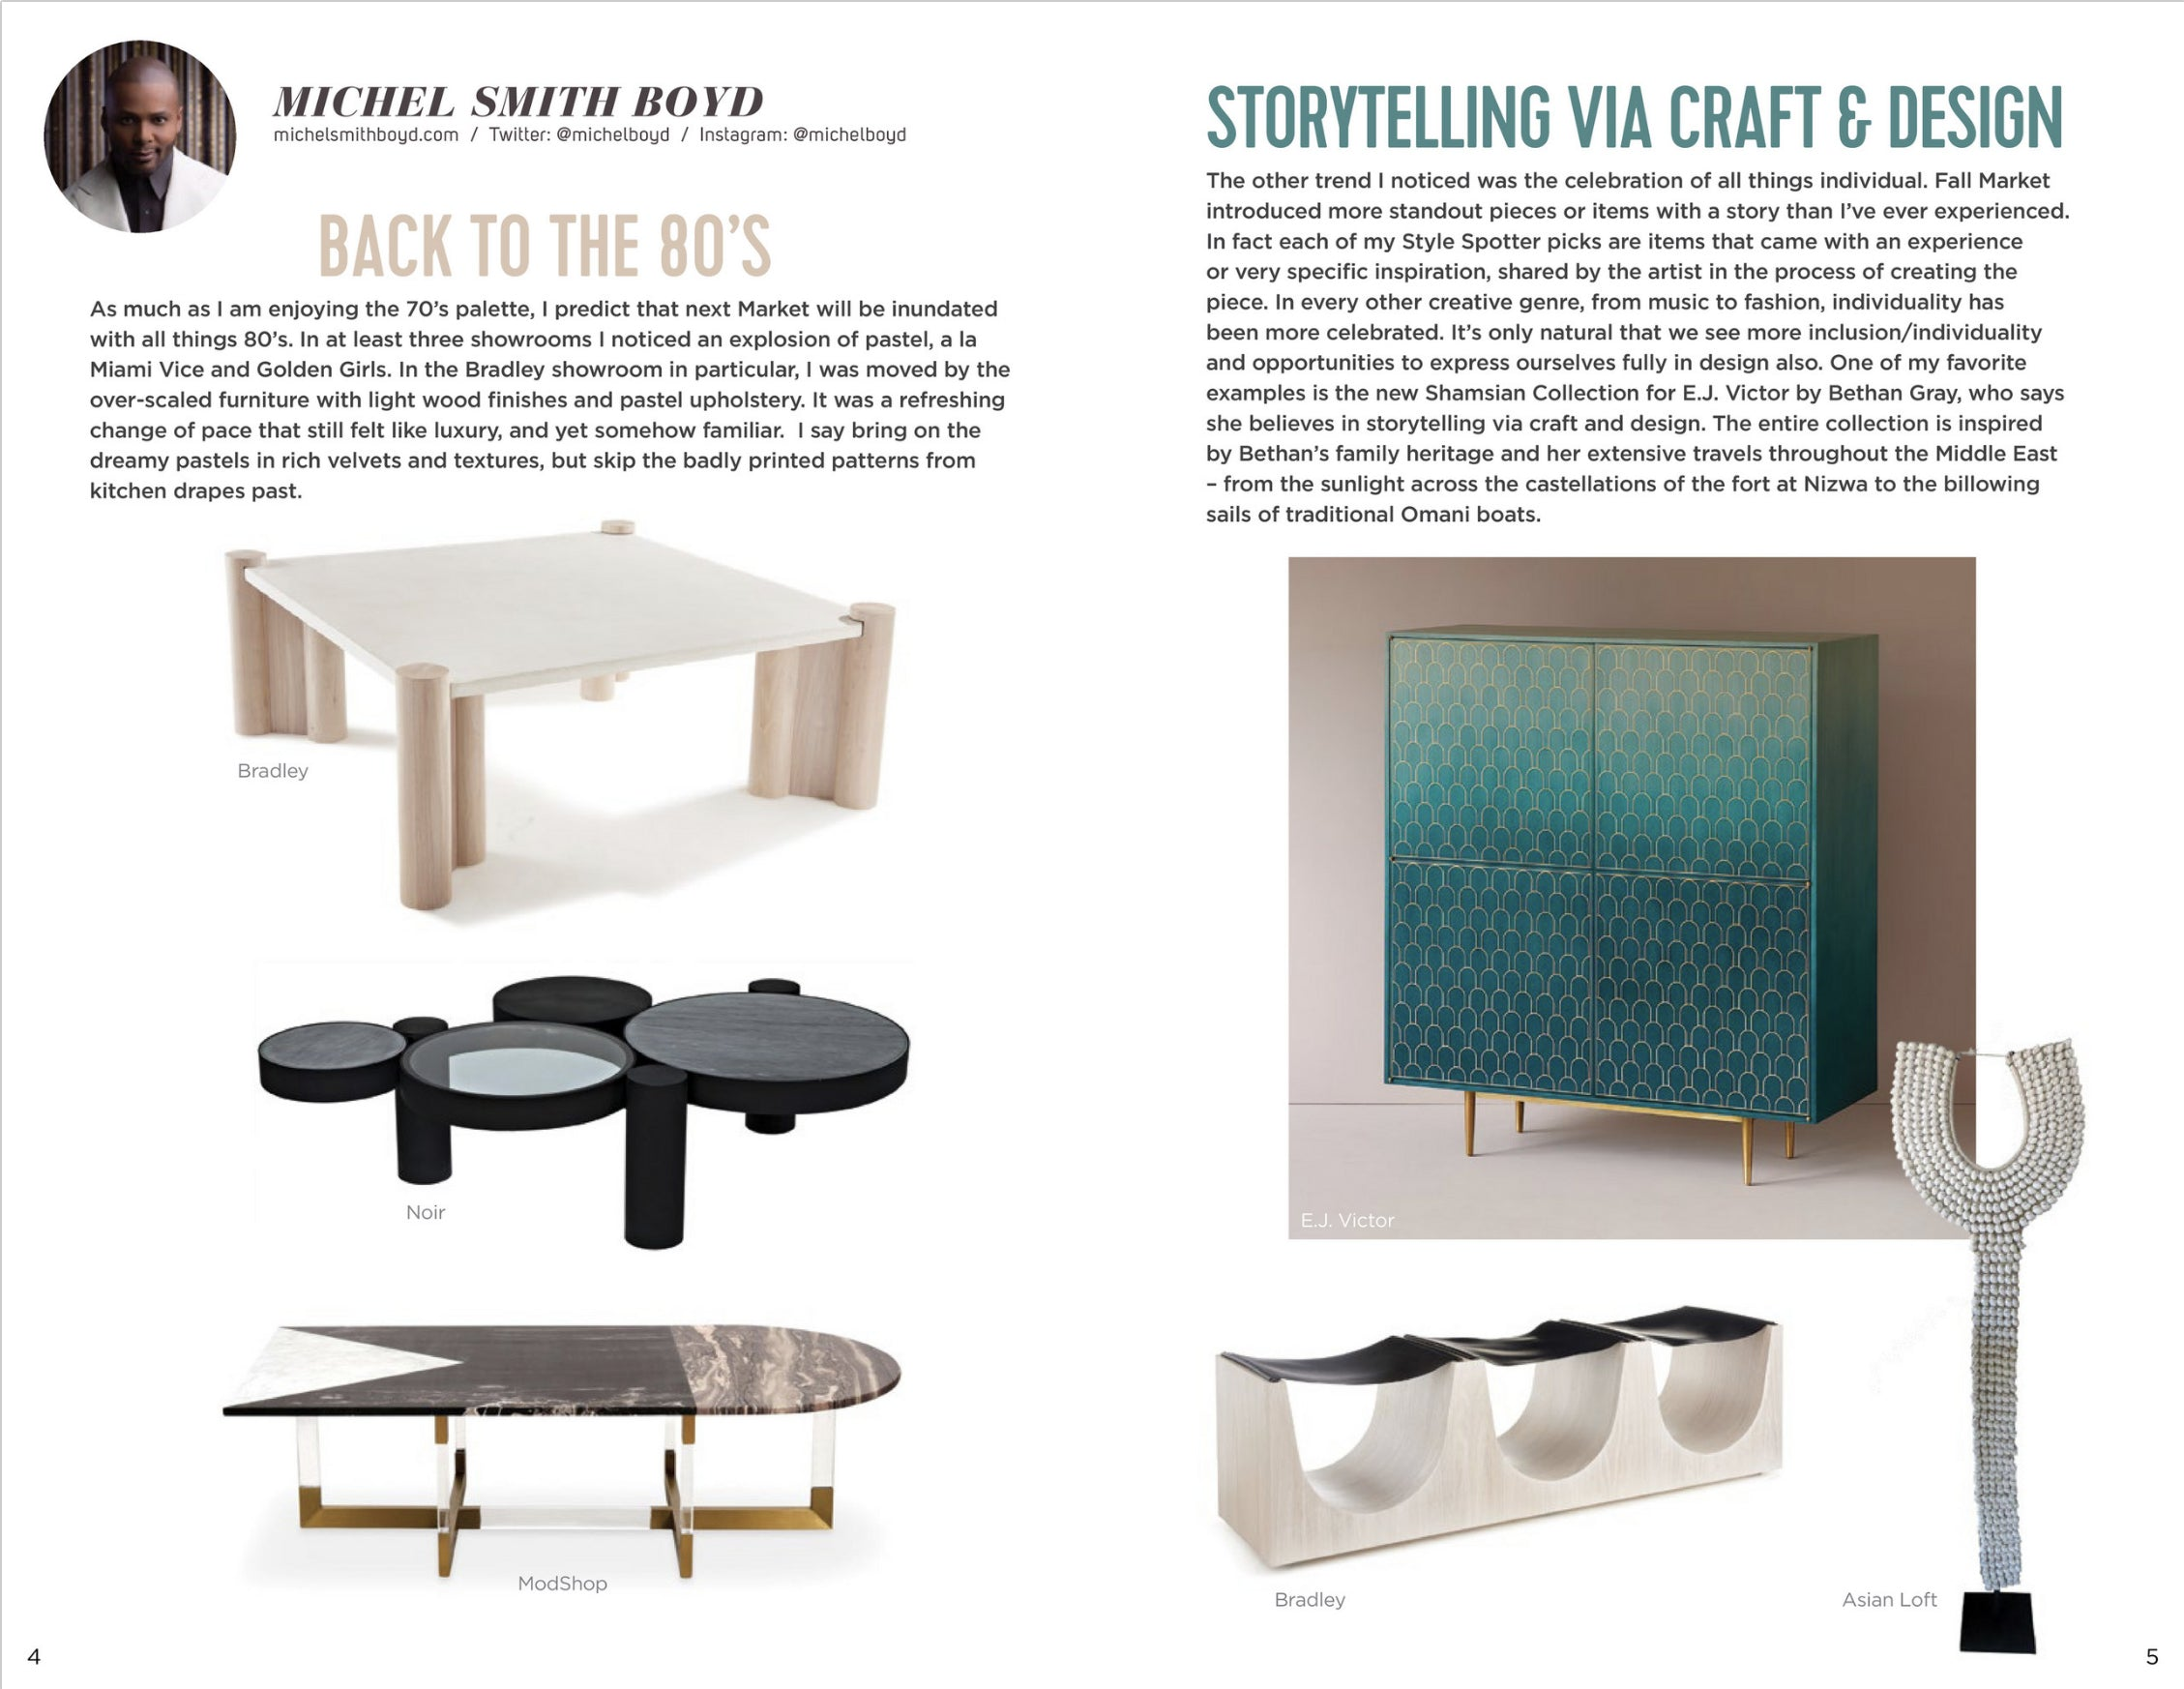 high point market style report featuring michel smith boyd pick of modshop's marseille coffee table